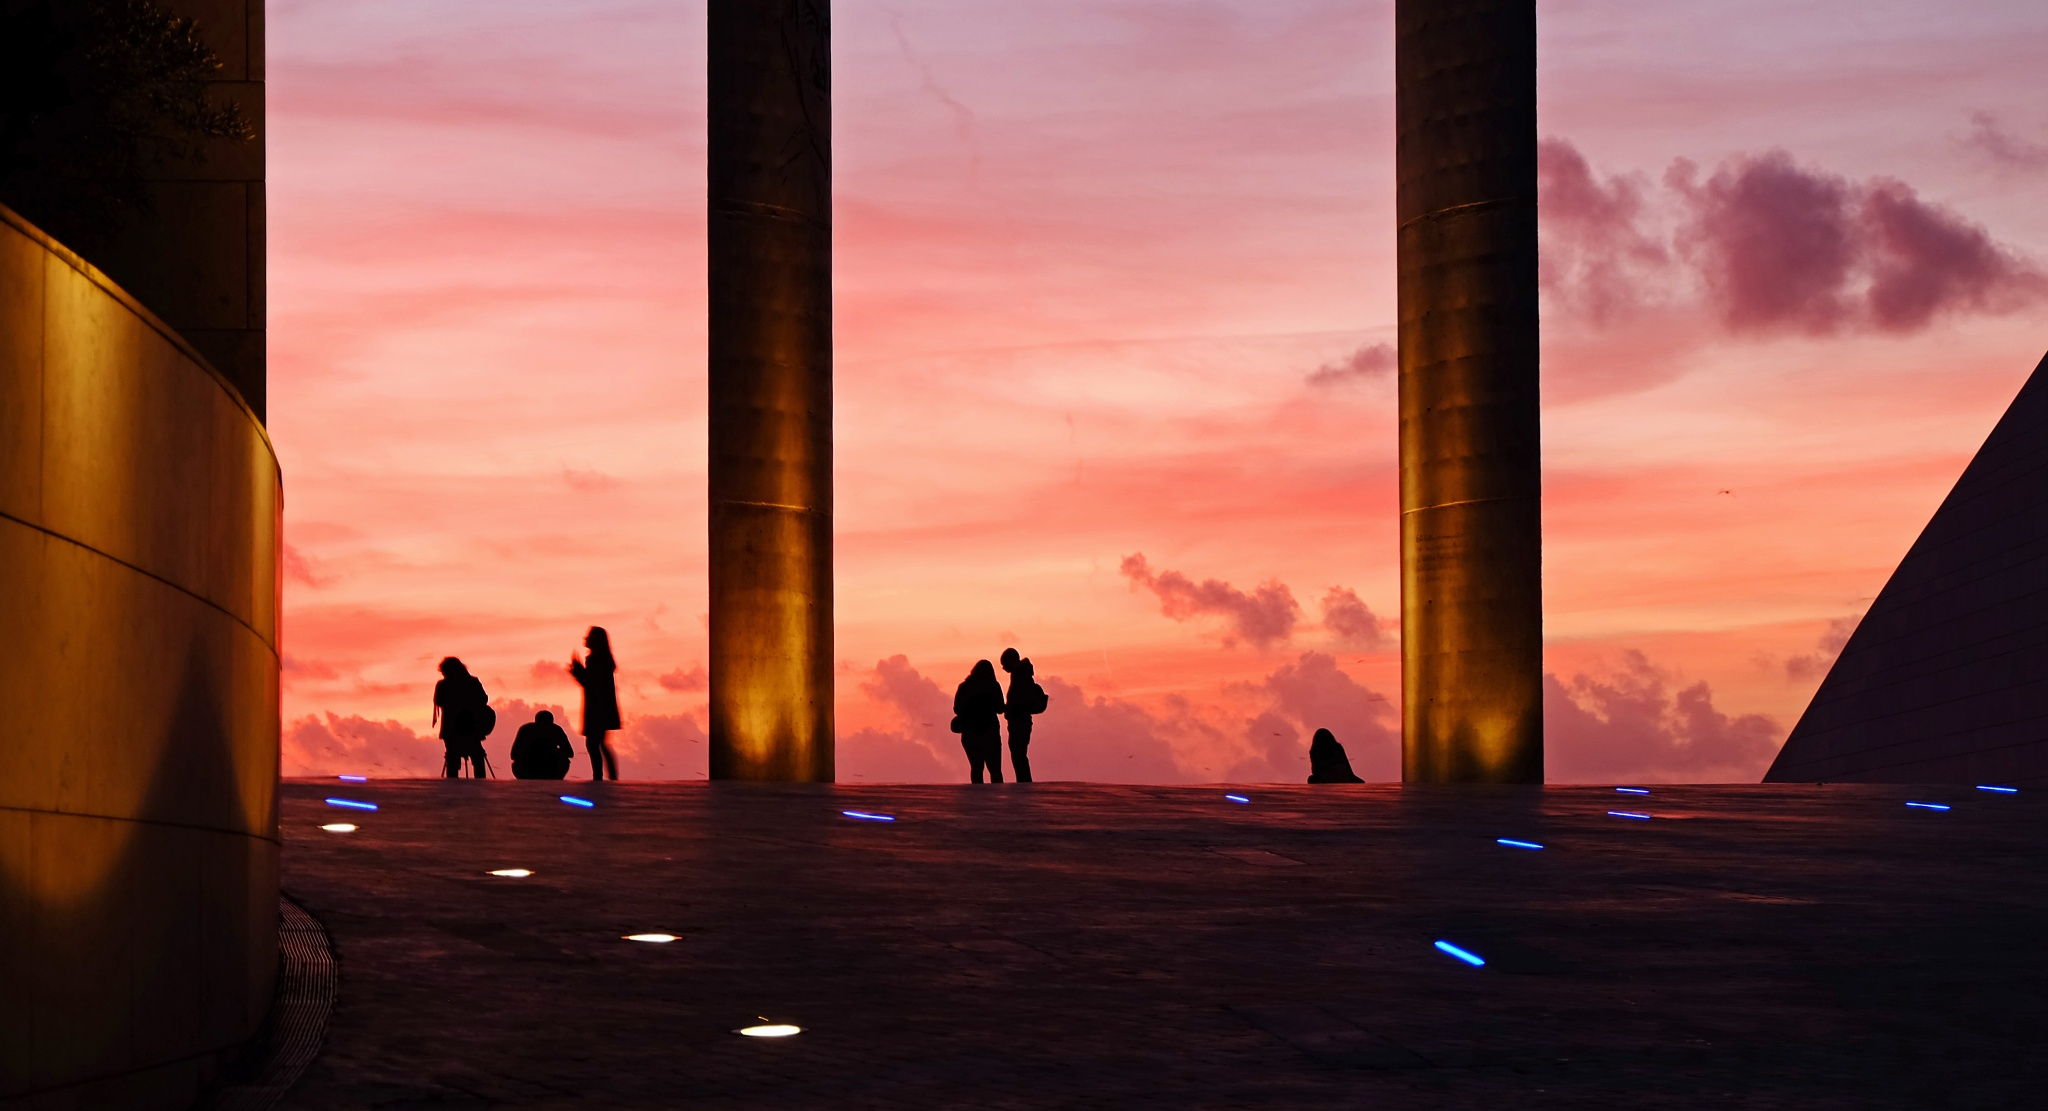 Chatting in the evening by Vítor Martins